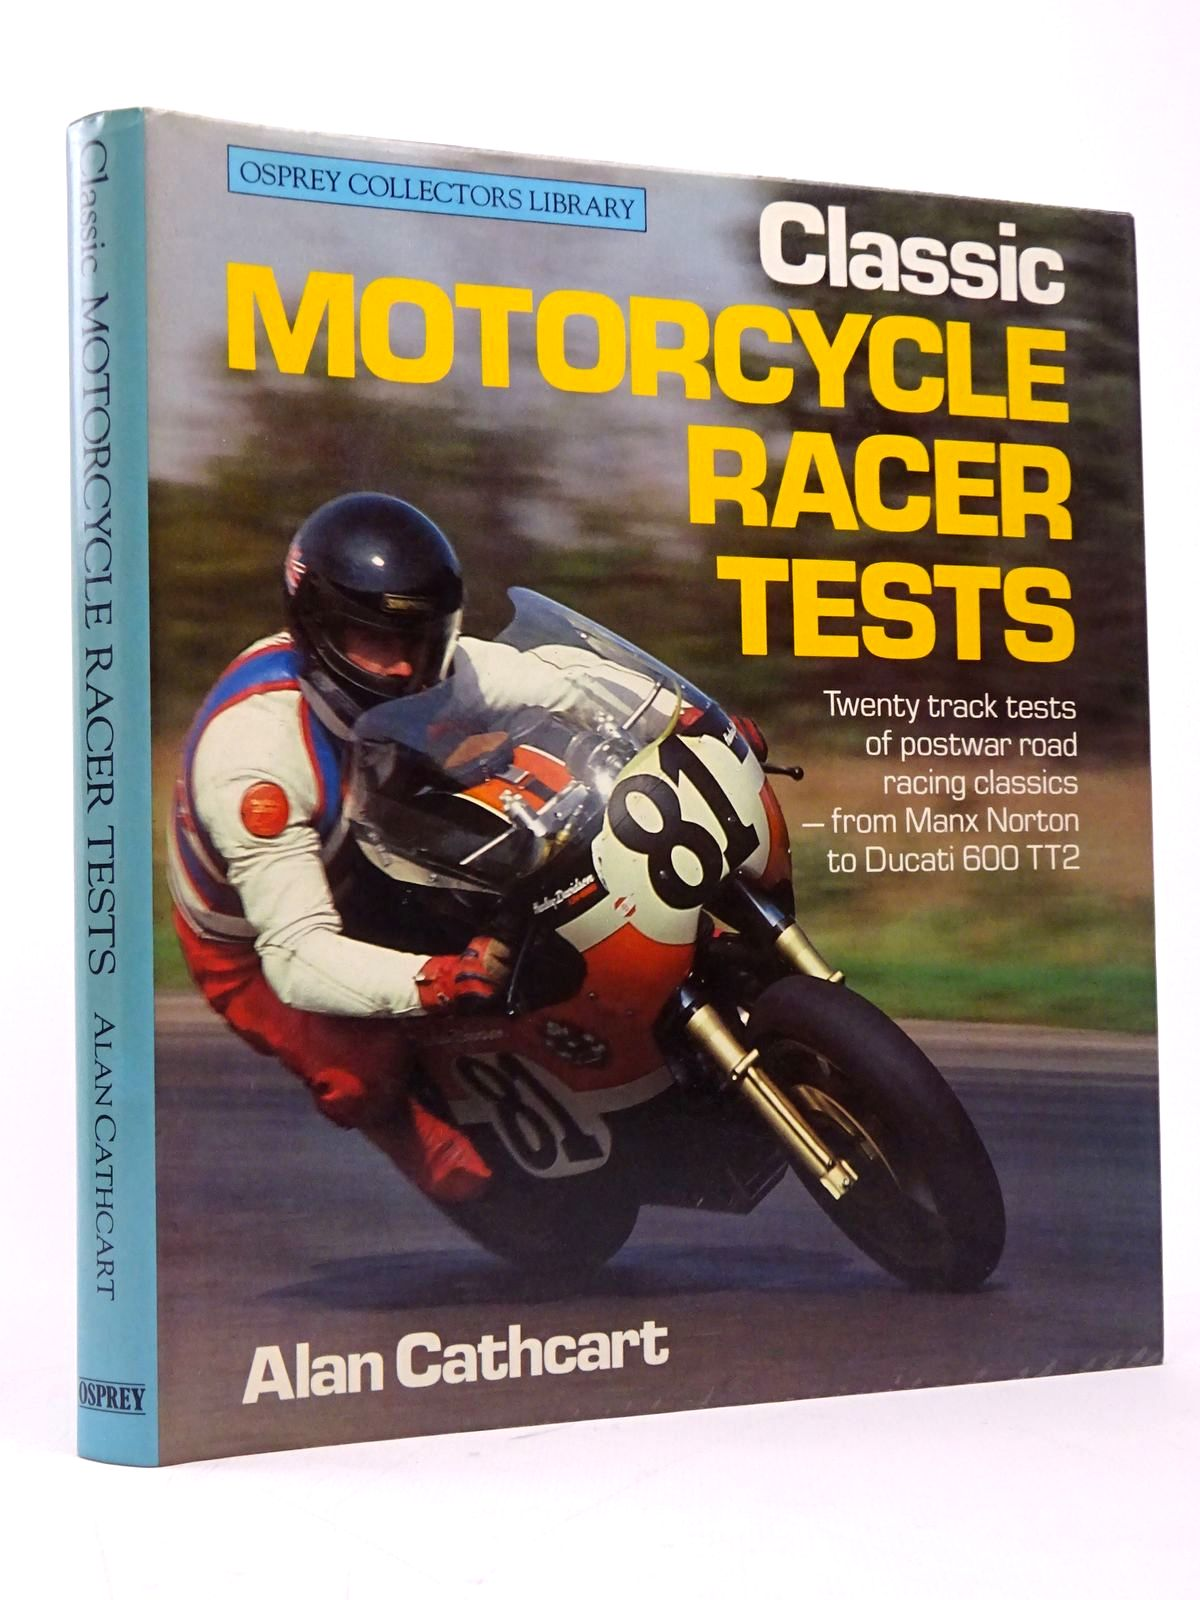 Photo of CLASSIC MOTORCYCLE RACER TESTS (OSPREY COLLECTOR'S LIBRARY) written by Cathcart, Alan published by Osprey Publishing (STOCK CODE: 1817729)  for sale by Stella & Rose's Books